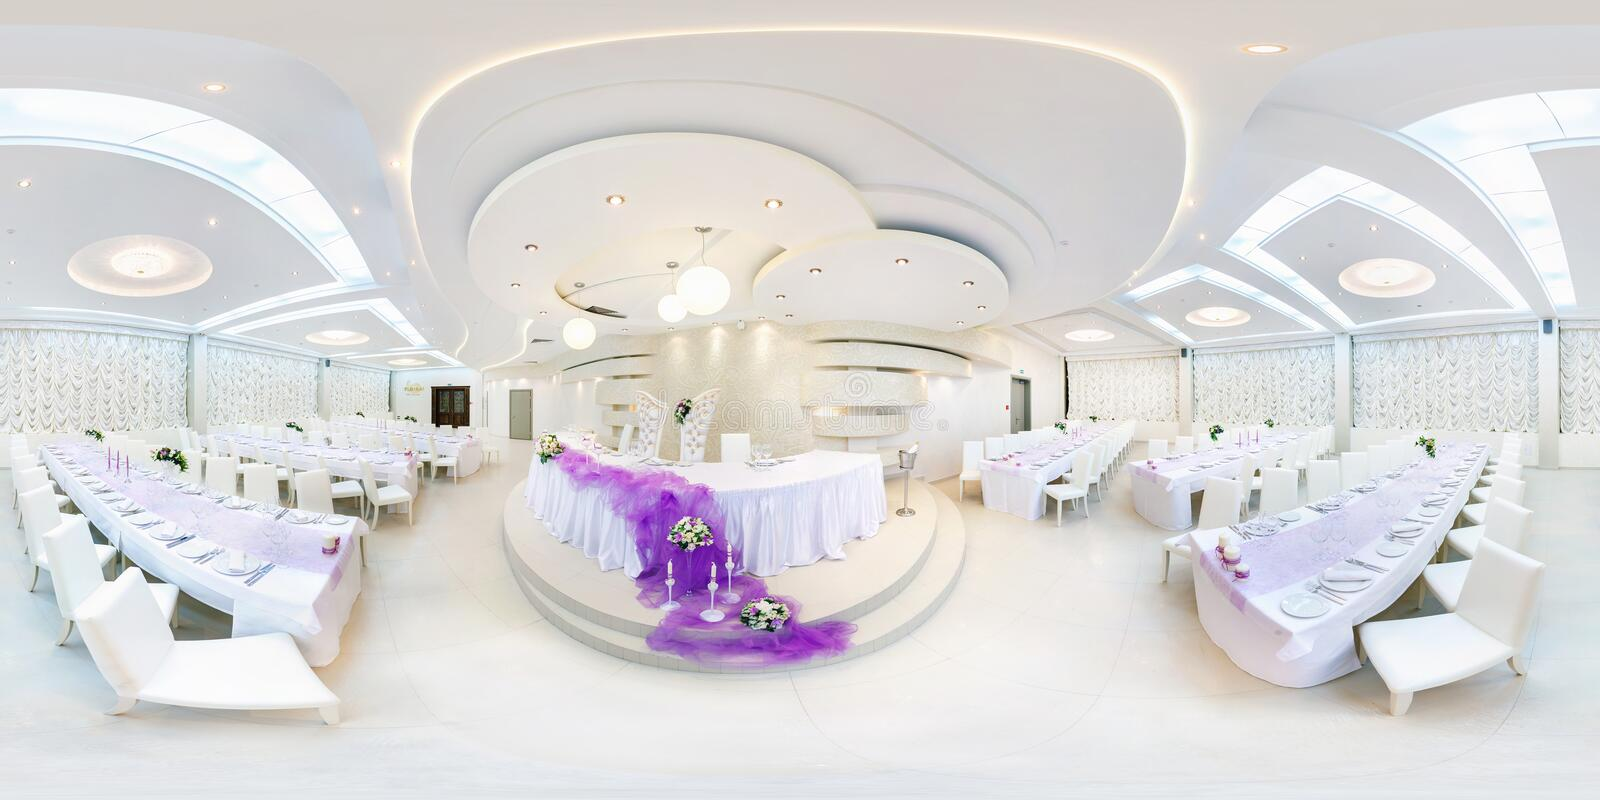 GRODNO, BELARUS - MAY 29, 2012: Panorama in interior in white banquet hall. Full 360 degree seamless panorama in equirectangular stock photography